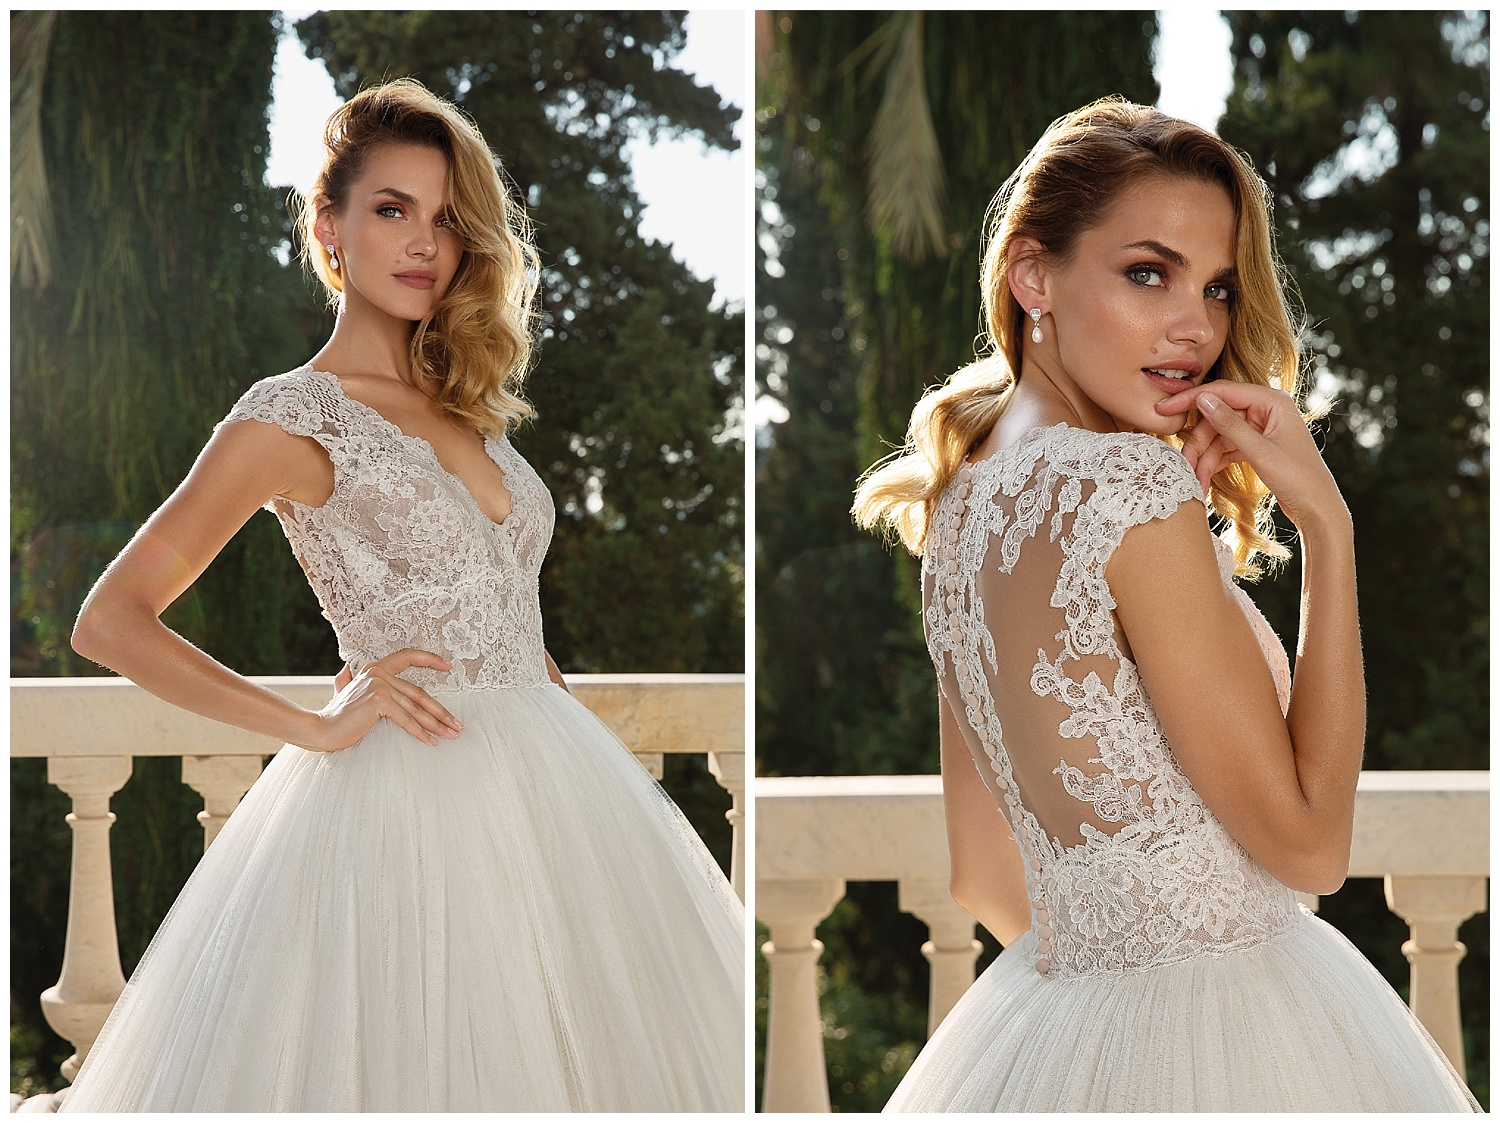 https://www.dropbox.com/preview/KRISTINE%20BLOG%20FILES%20AND%20IMAGES/Justin%20Alexander%20fall%202019%20bridal%20collection%20-stomped/justin-alexander-88082-lace-and-tulle-ballgown-epiphany-boutique-carmel-california.jpg?role=personal